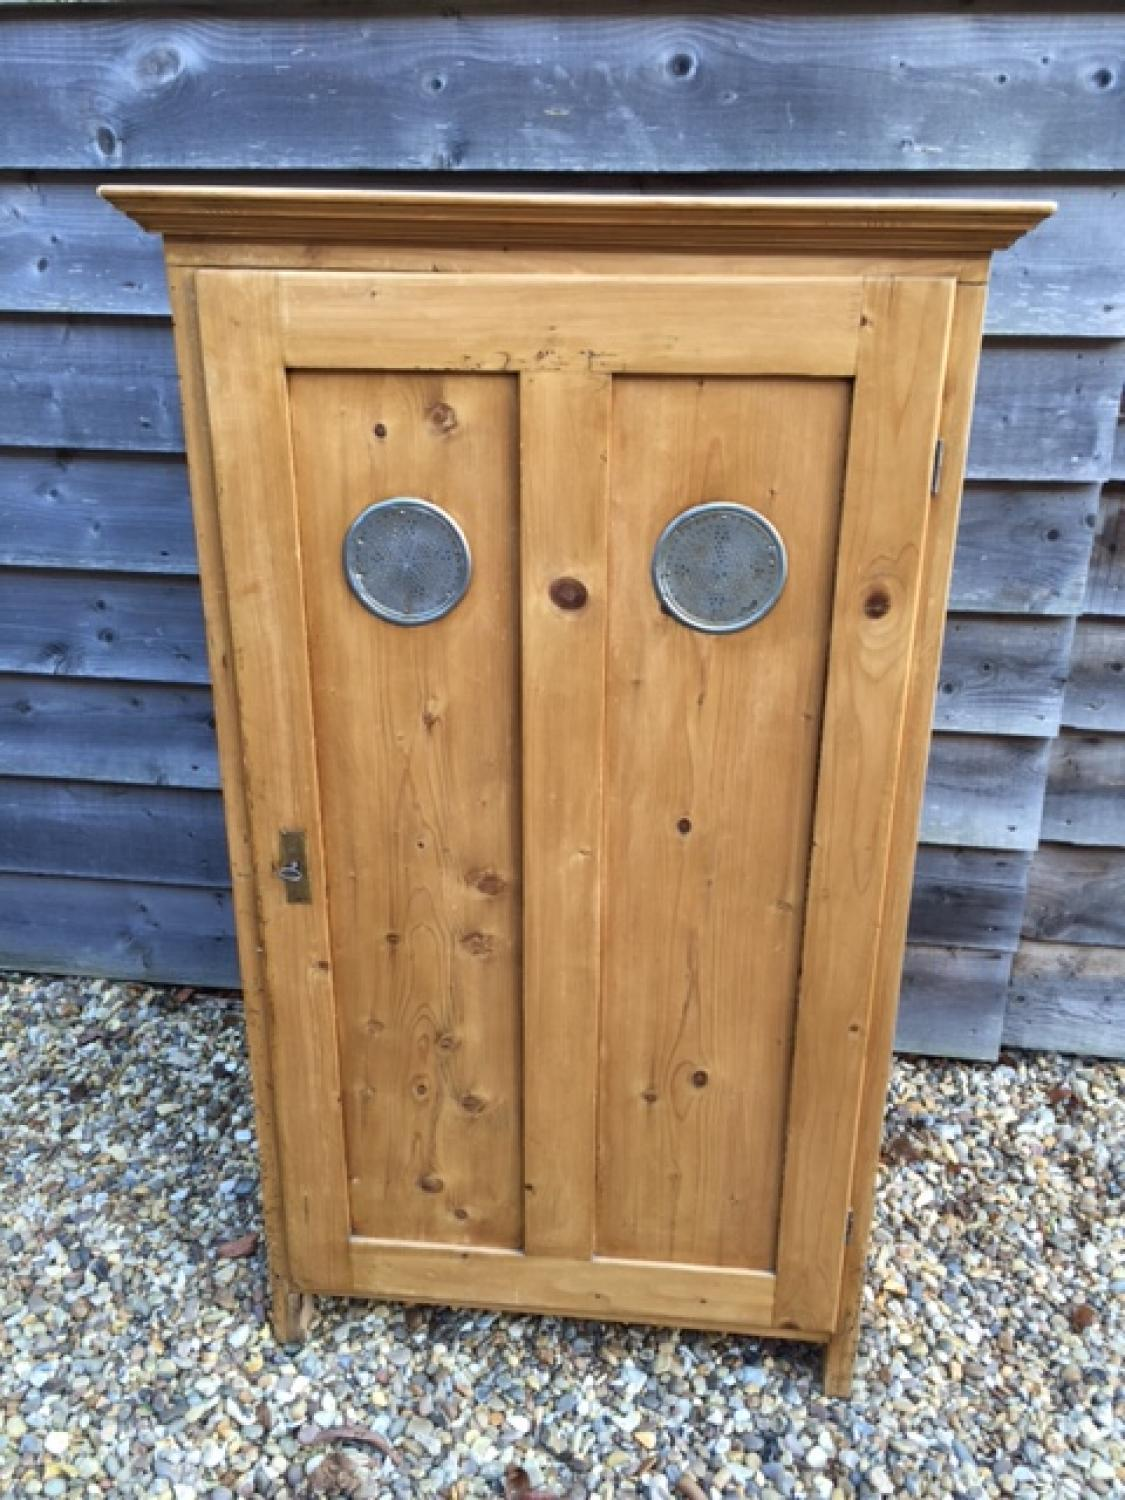 Small Antique Pine Larder Cupboard - Small Antique Pine Larder Cupboard In FURNITURE & BOXES